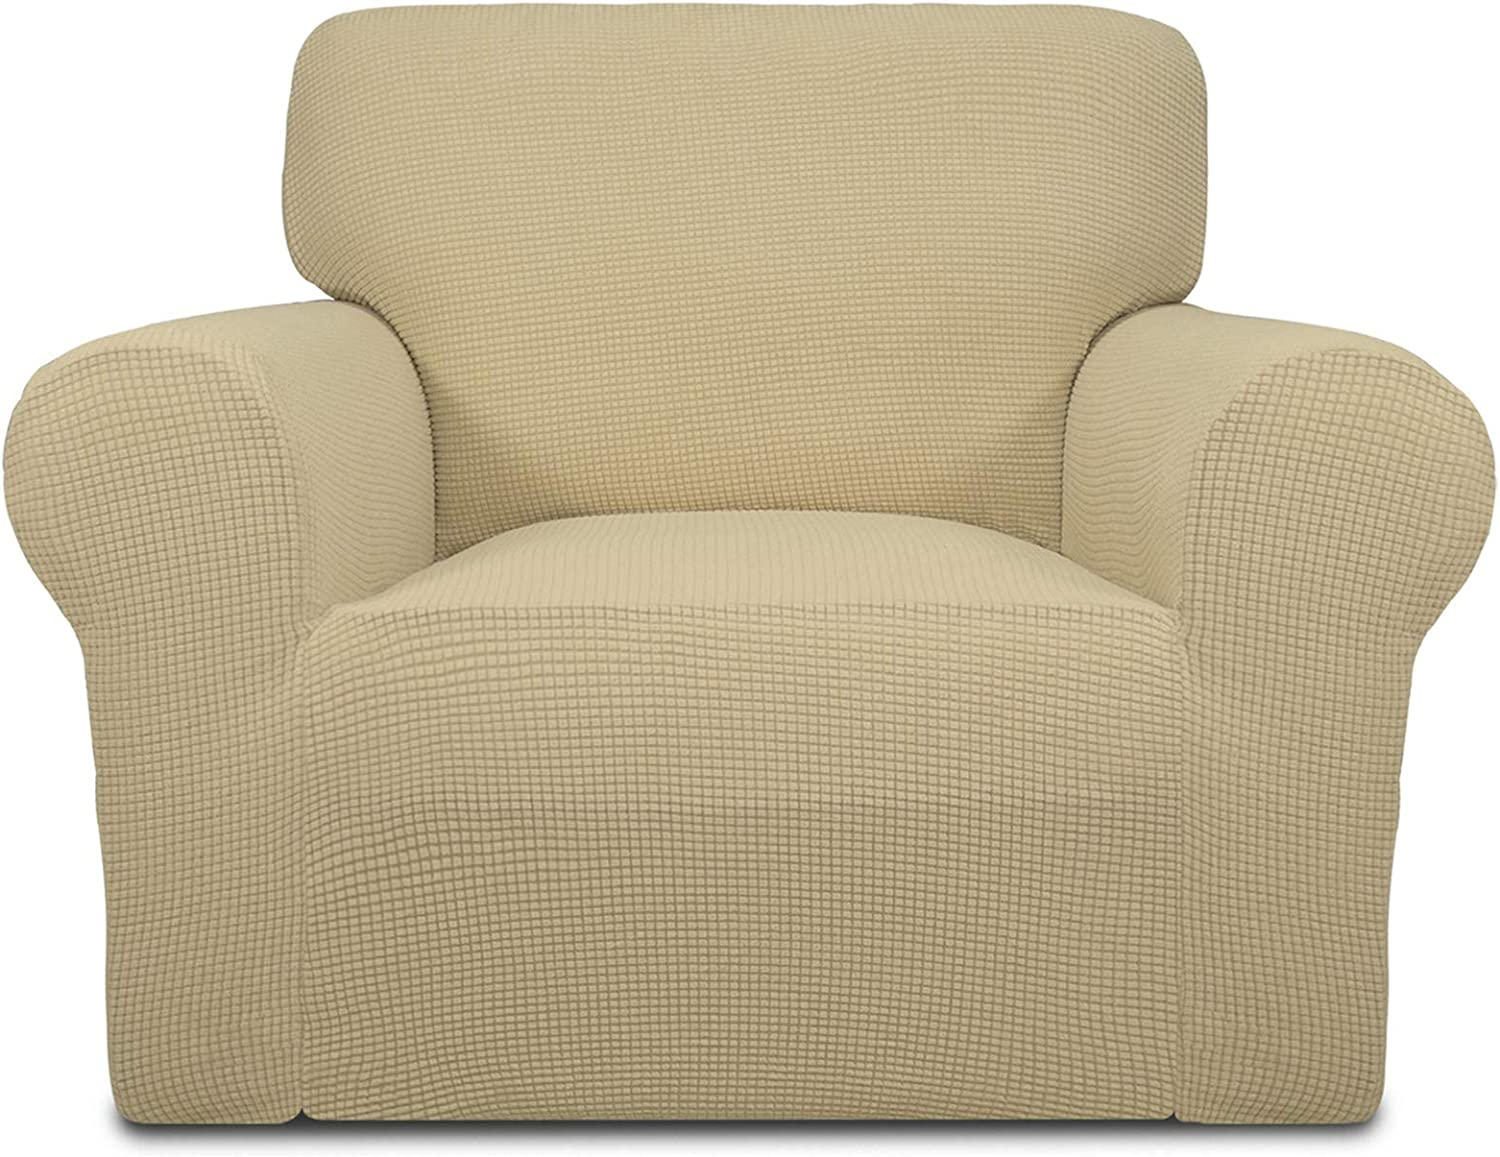 Easy-Going Stretch Sofa Slipcover 1-PieceSofa Cover Furniture Protector Couch Soft with Elastic Bottom Kids, Spandex Jacquard Fabric Small Checks(Chair,Beige)